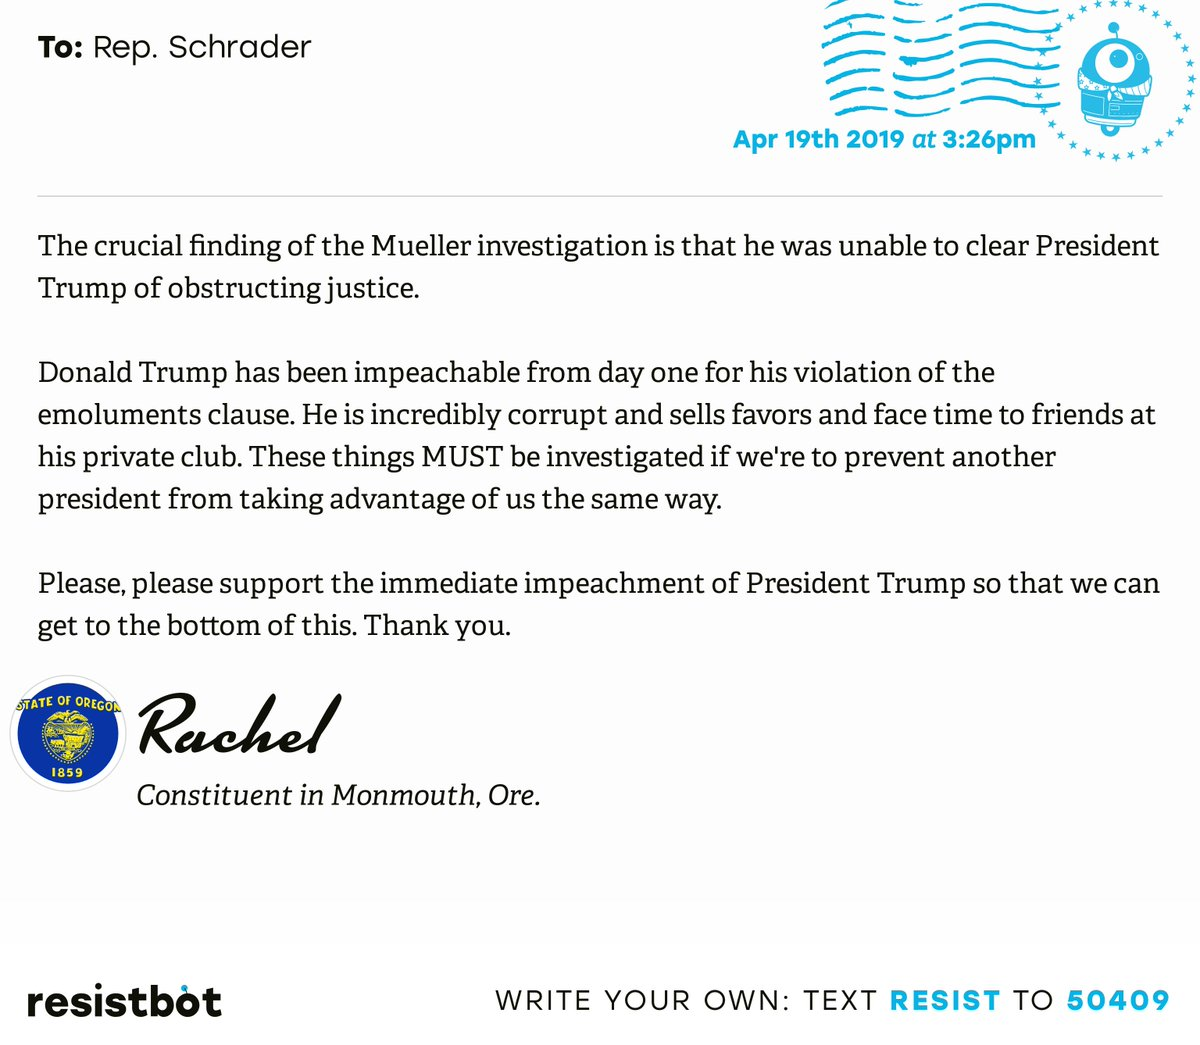 I just delivered this letter from Rachel in Monmouth, Ore. to @RepSchrader #orpols #orpolitics #ReleaseTheReport